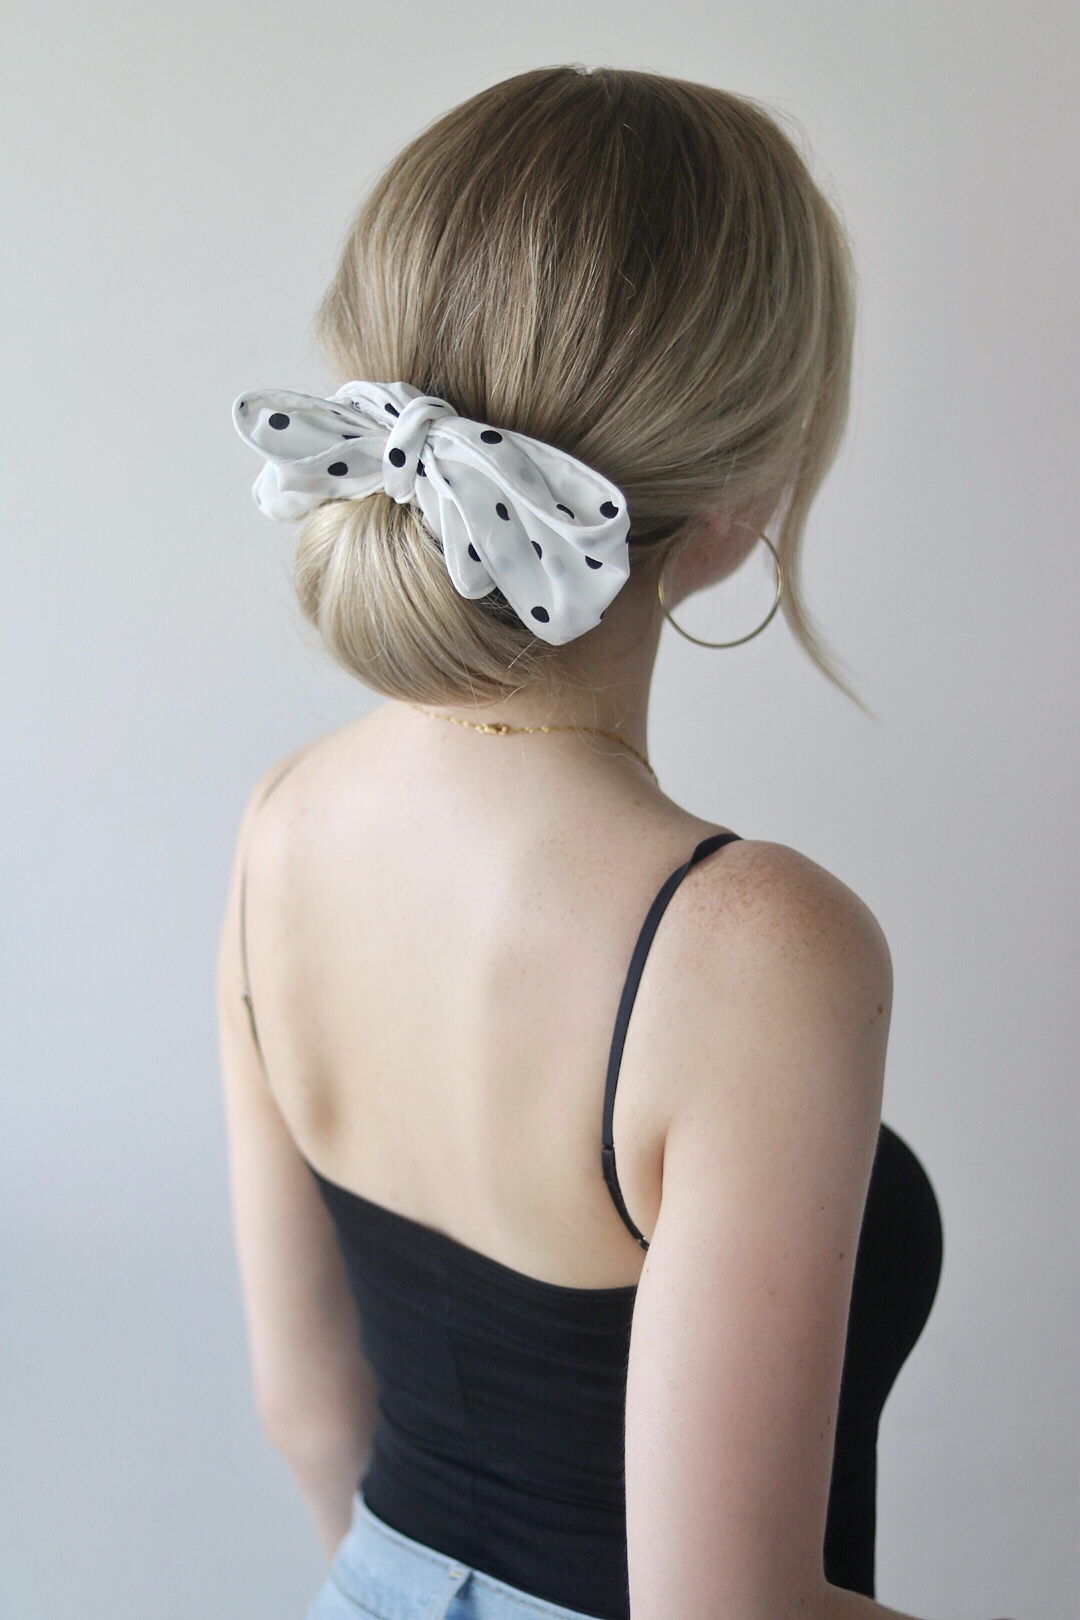 EASY SUMMER HAIRSTYLES WITH A SCARF, Alex Gaboury